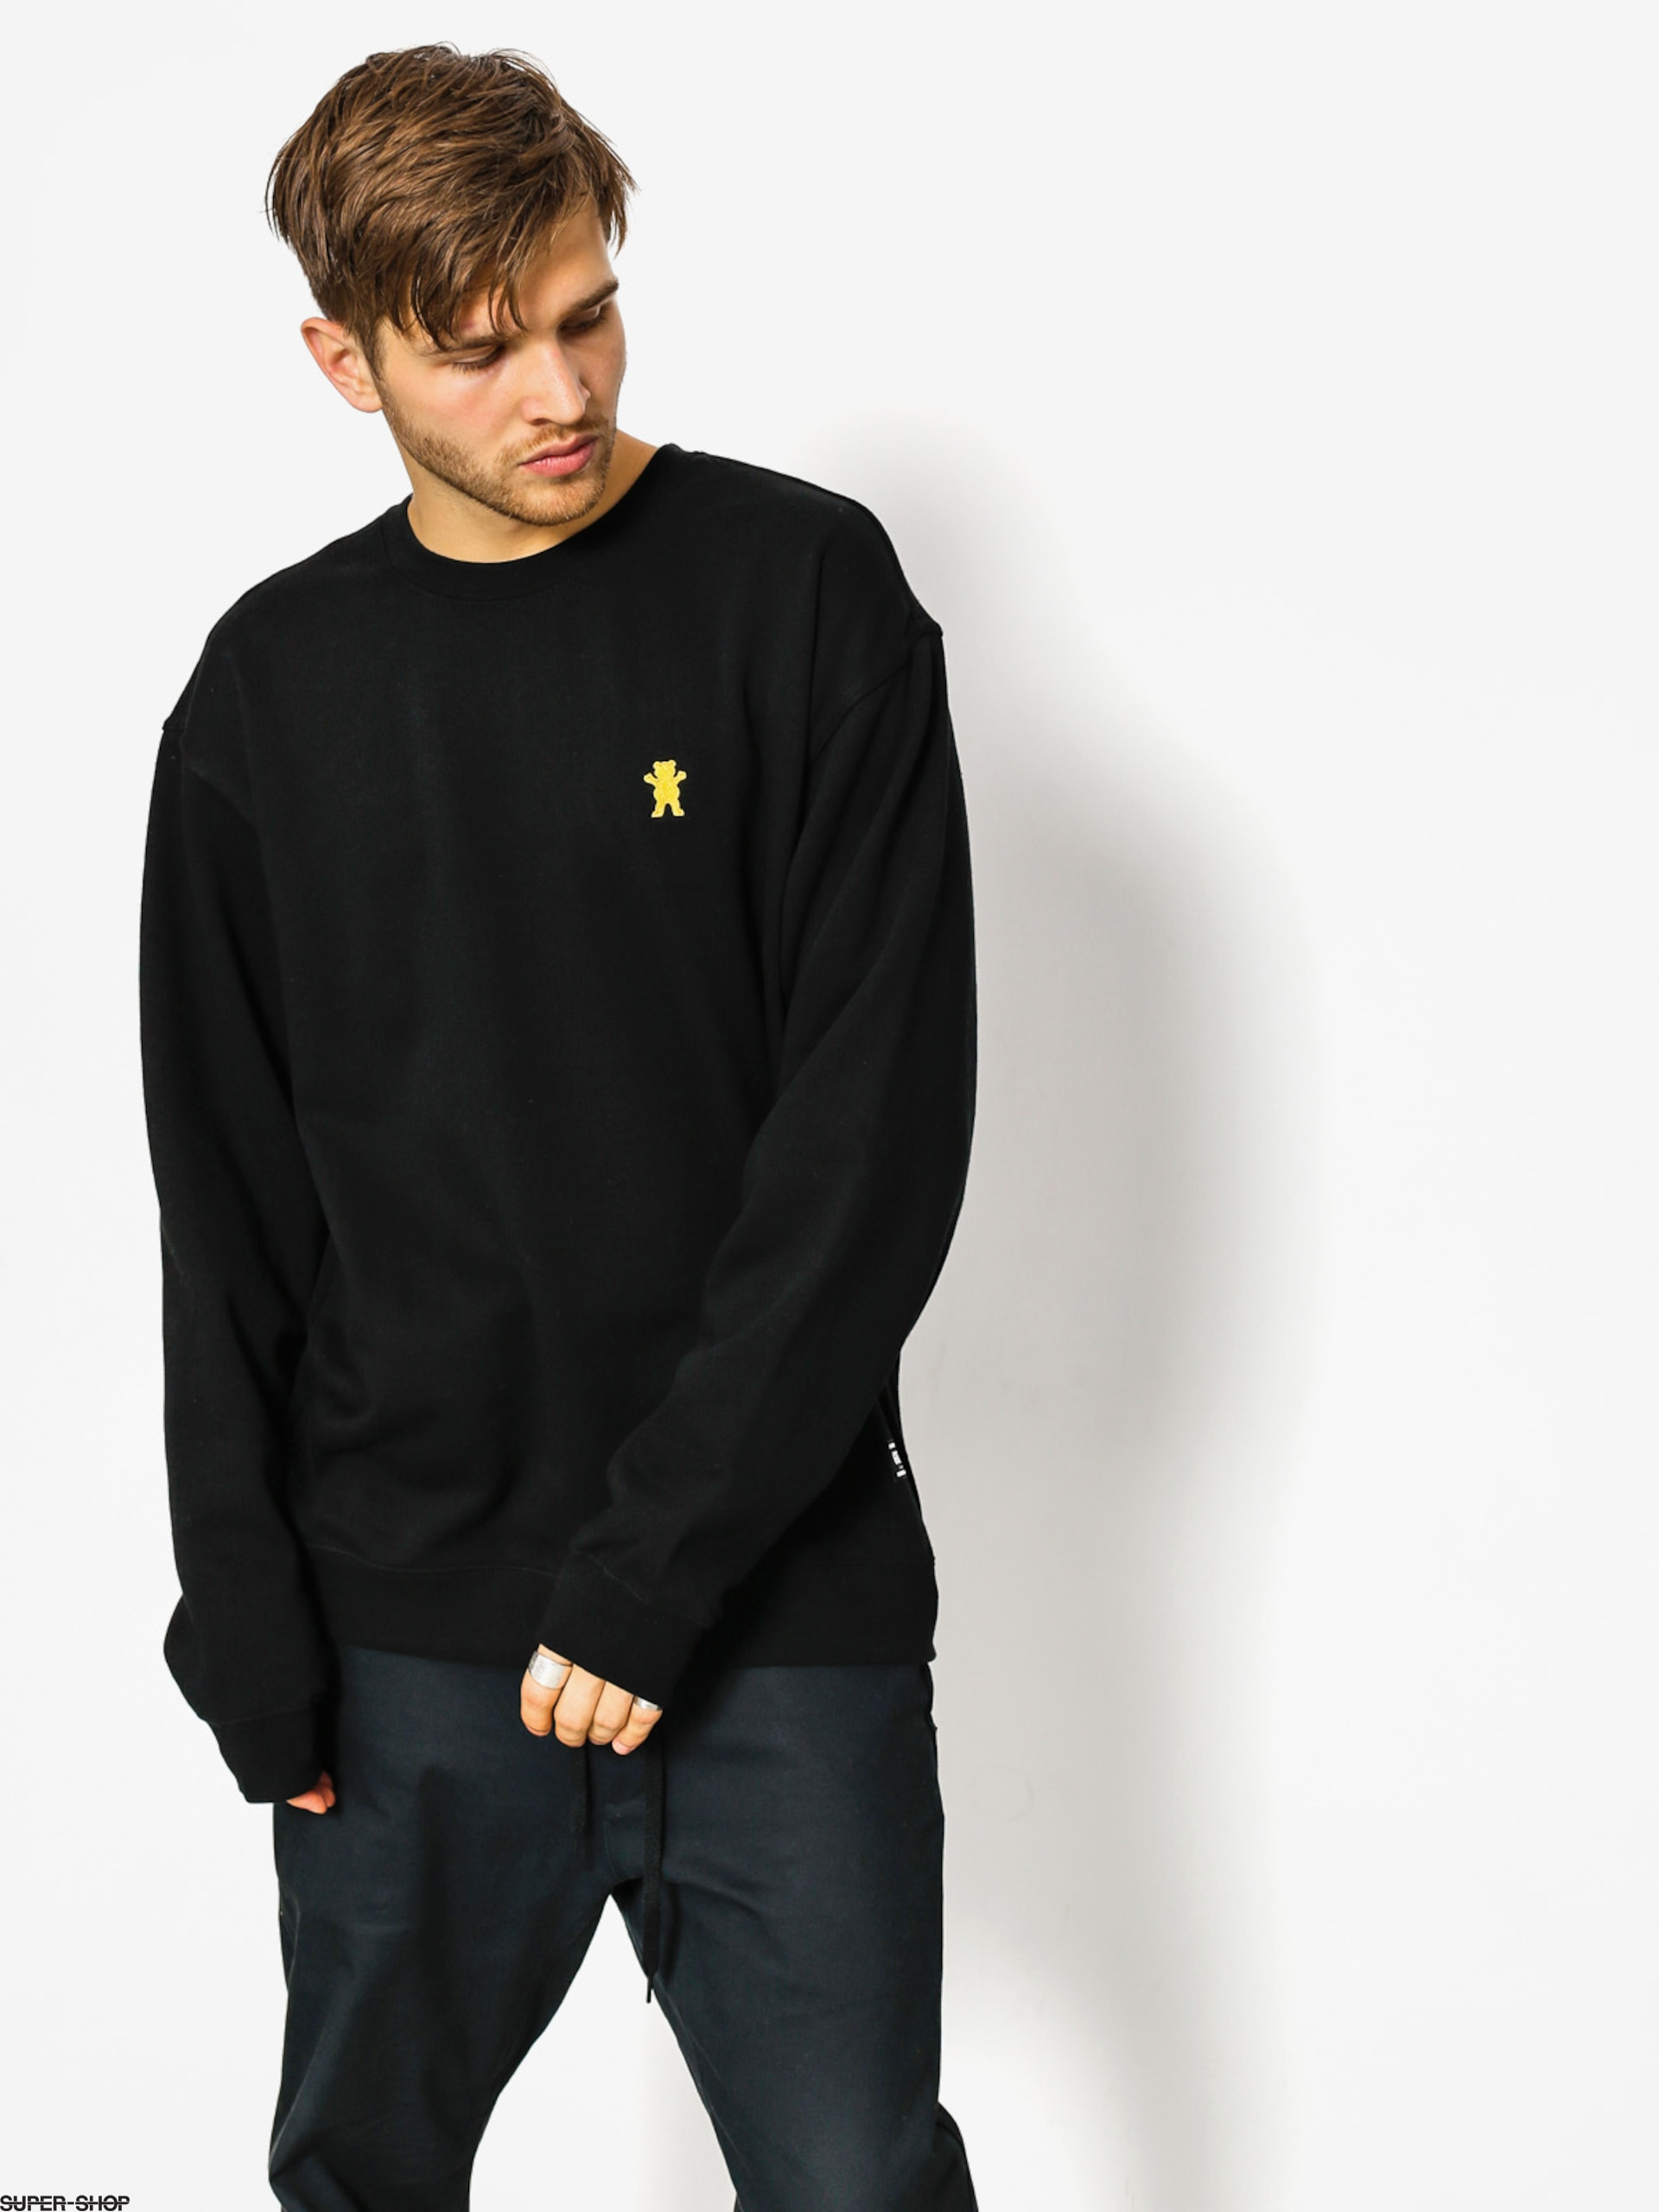 Grizzly Griptape Sweatshirt Og Bear Embroidered Crewneck